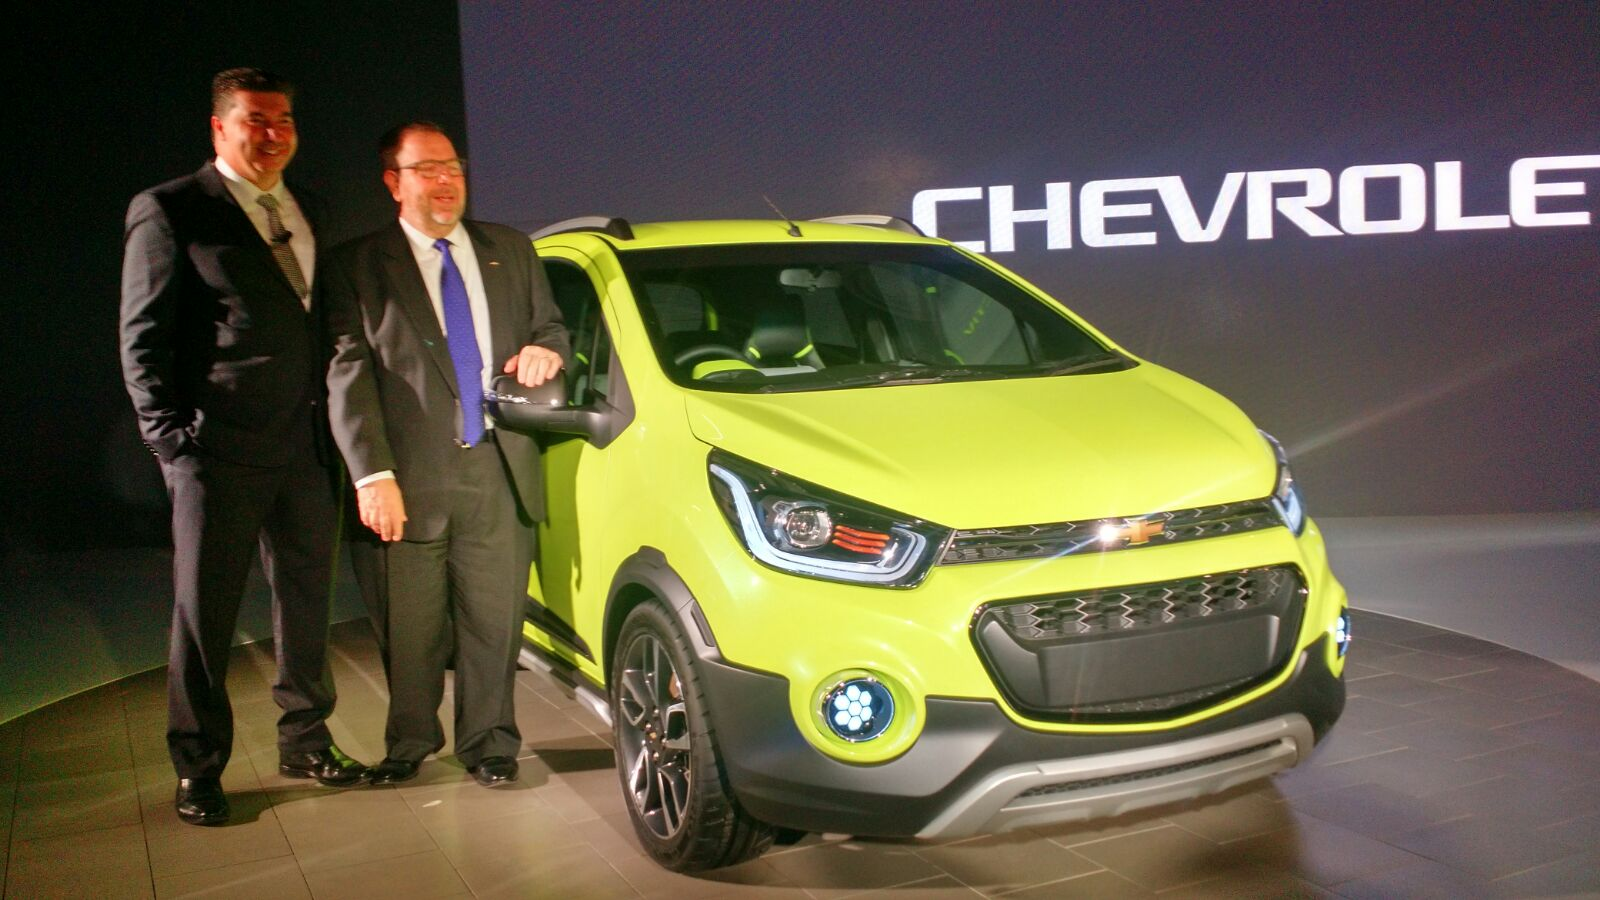 Chevrolet Cars At Auto Expo 2016